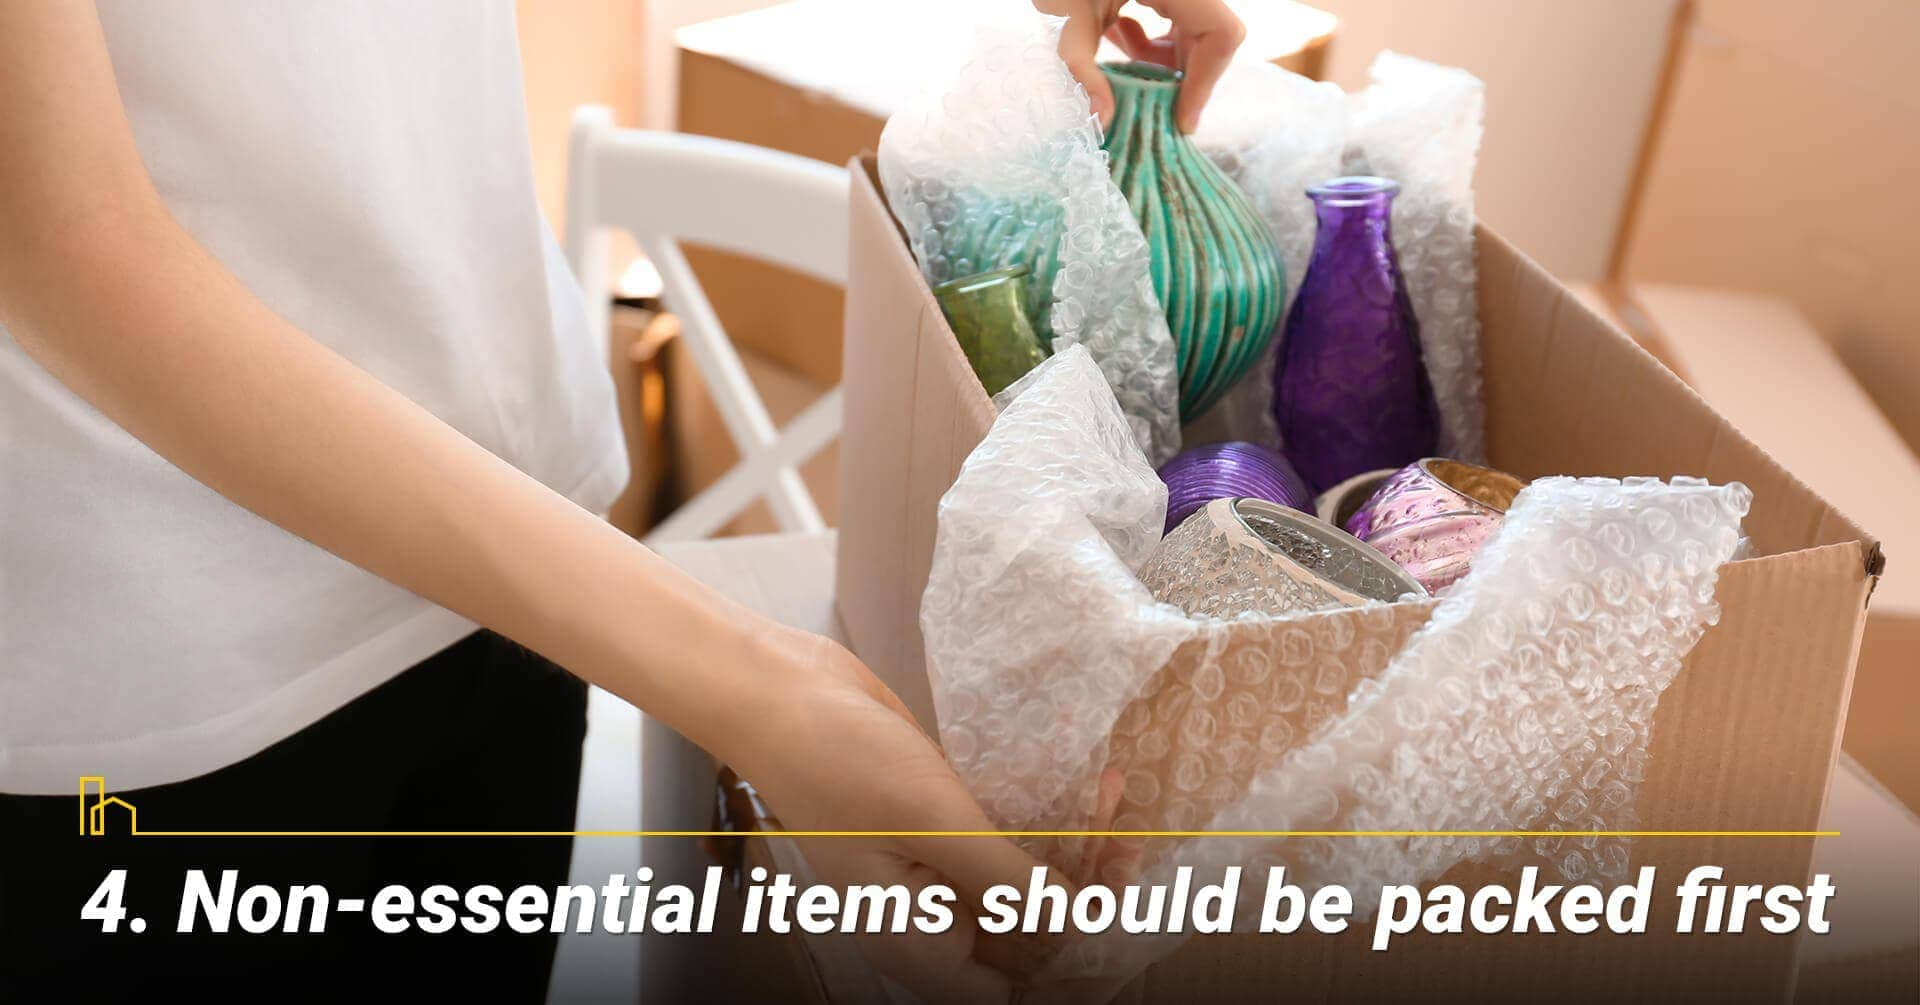 Non-essential items should be packed first, pack less frequently used items first